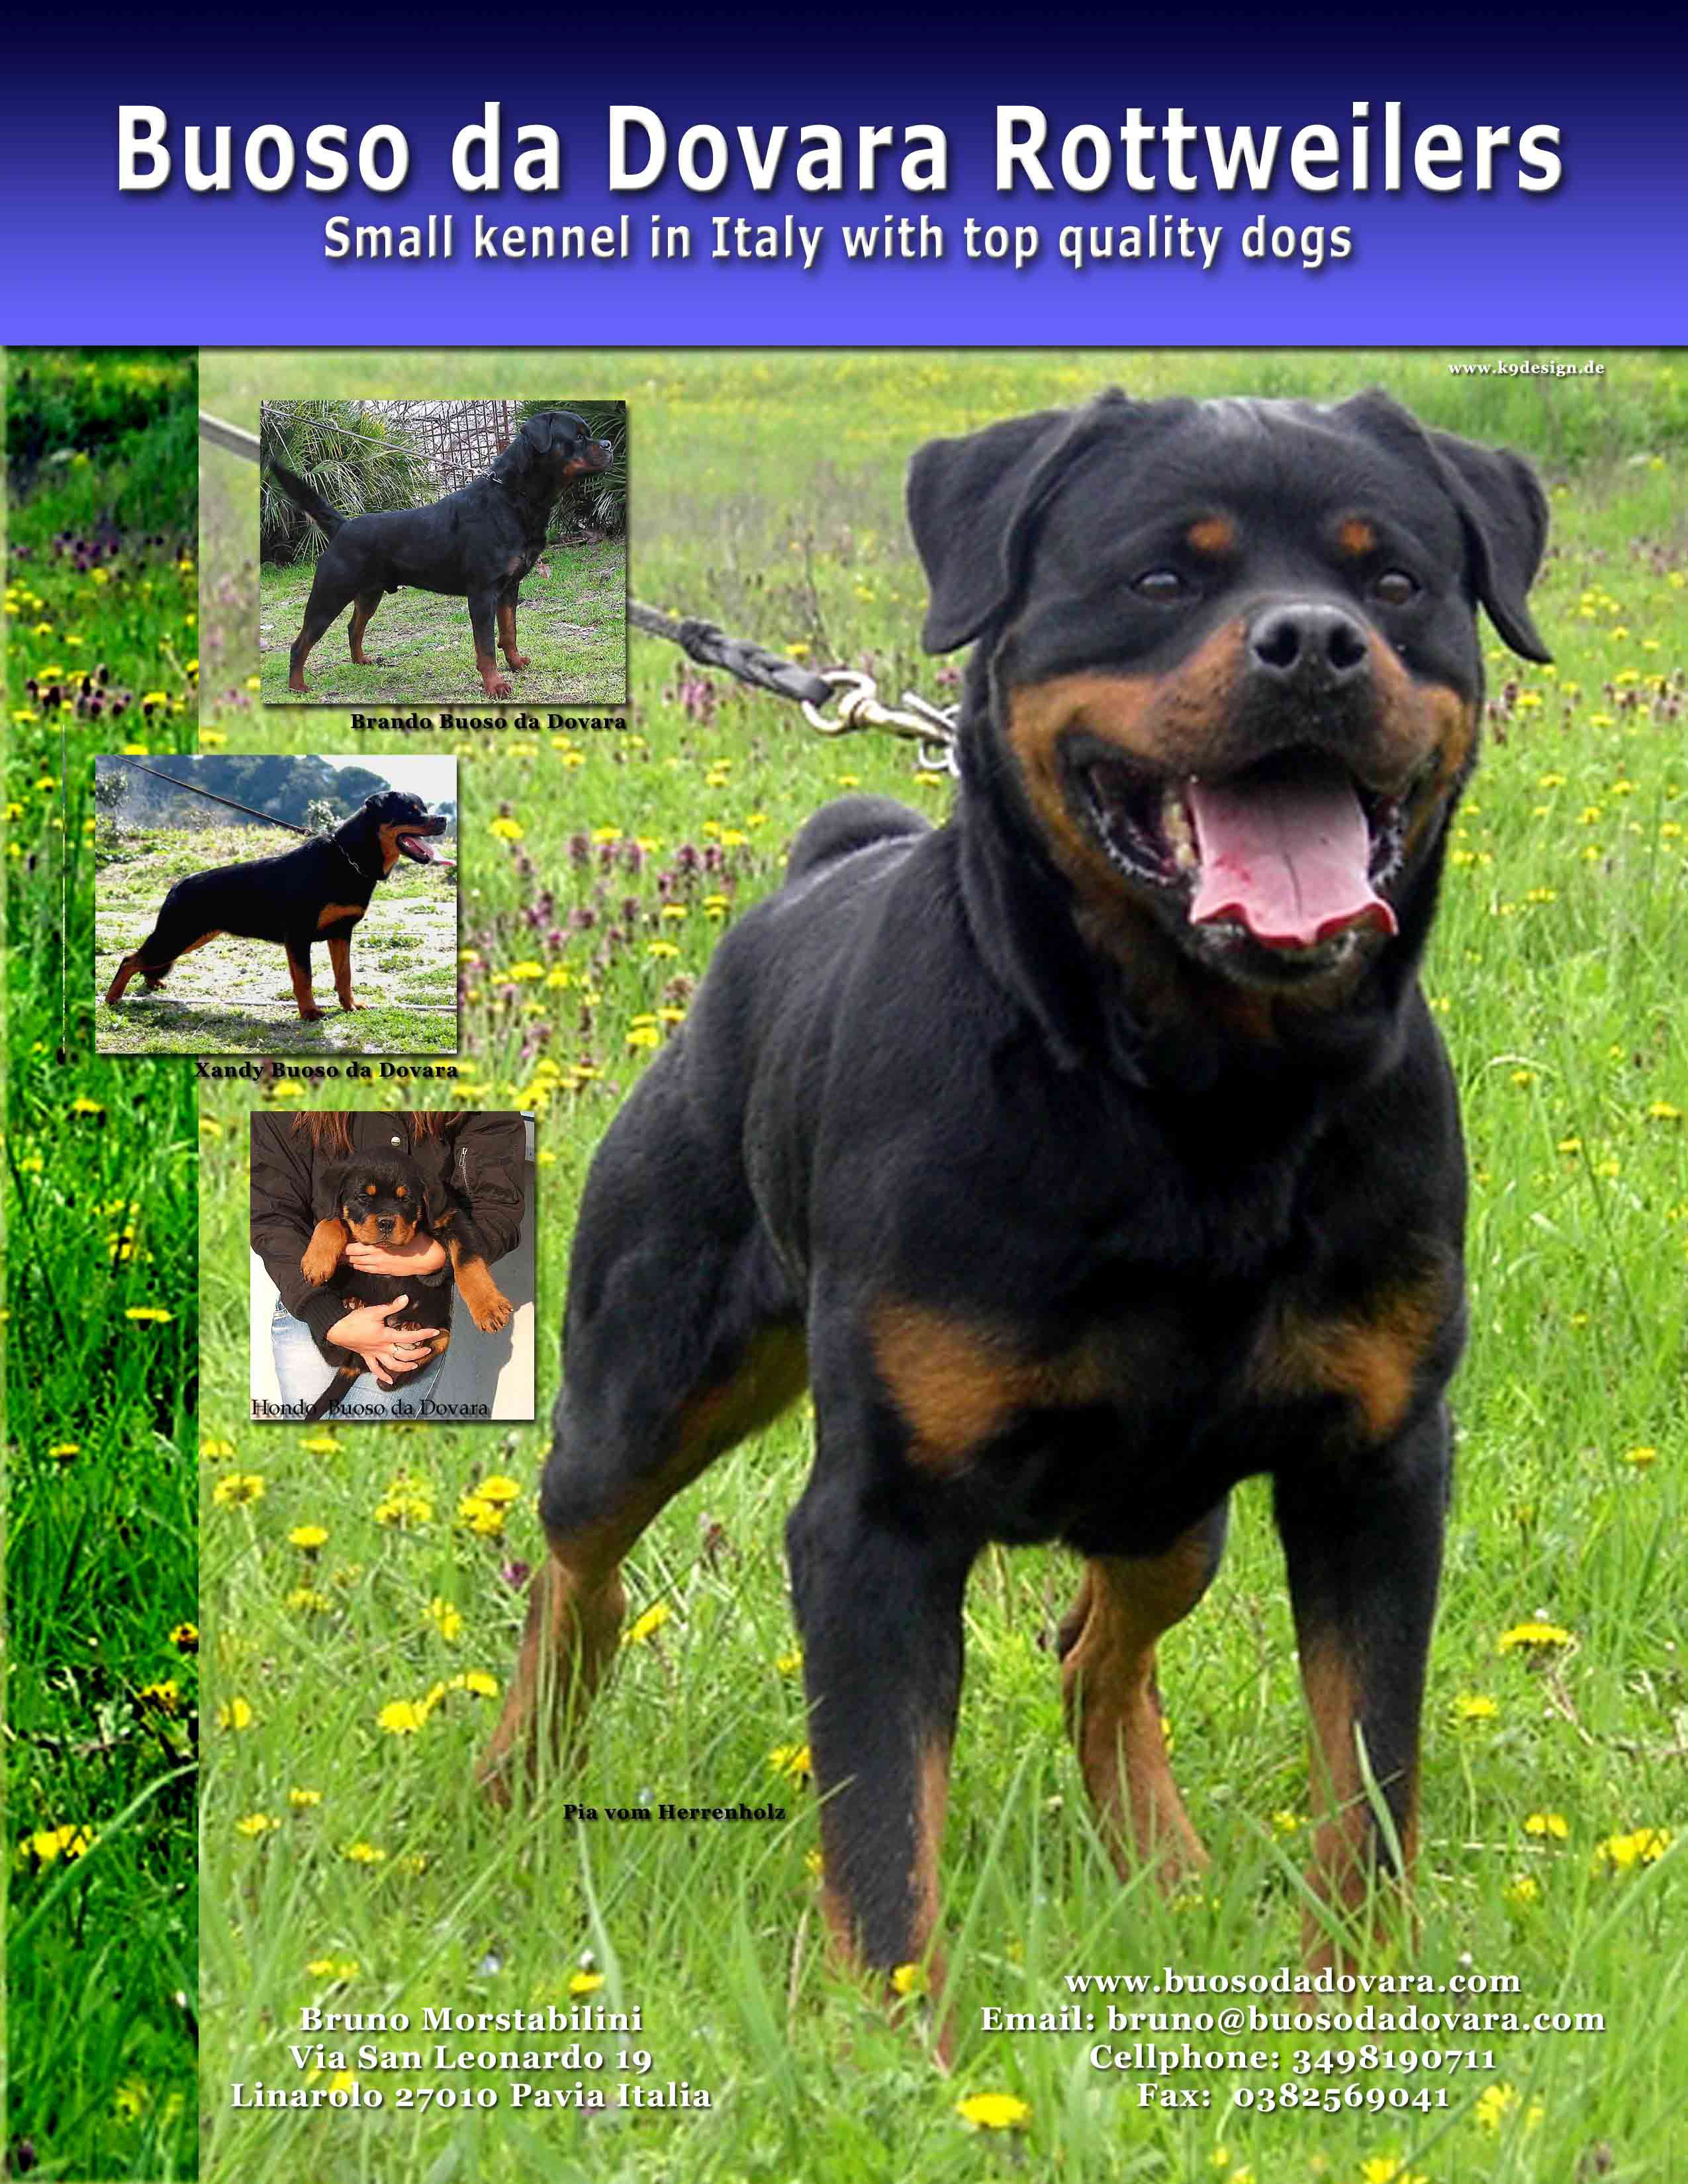 Akc rottweiler history